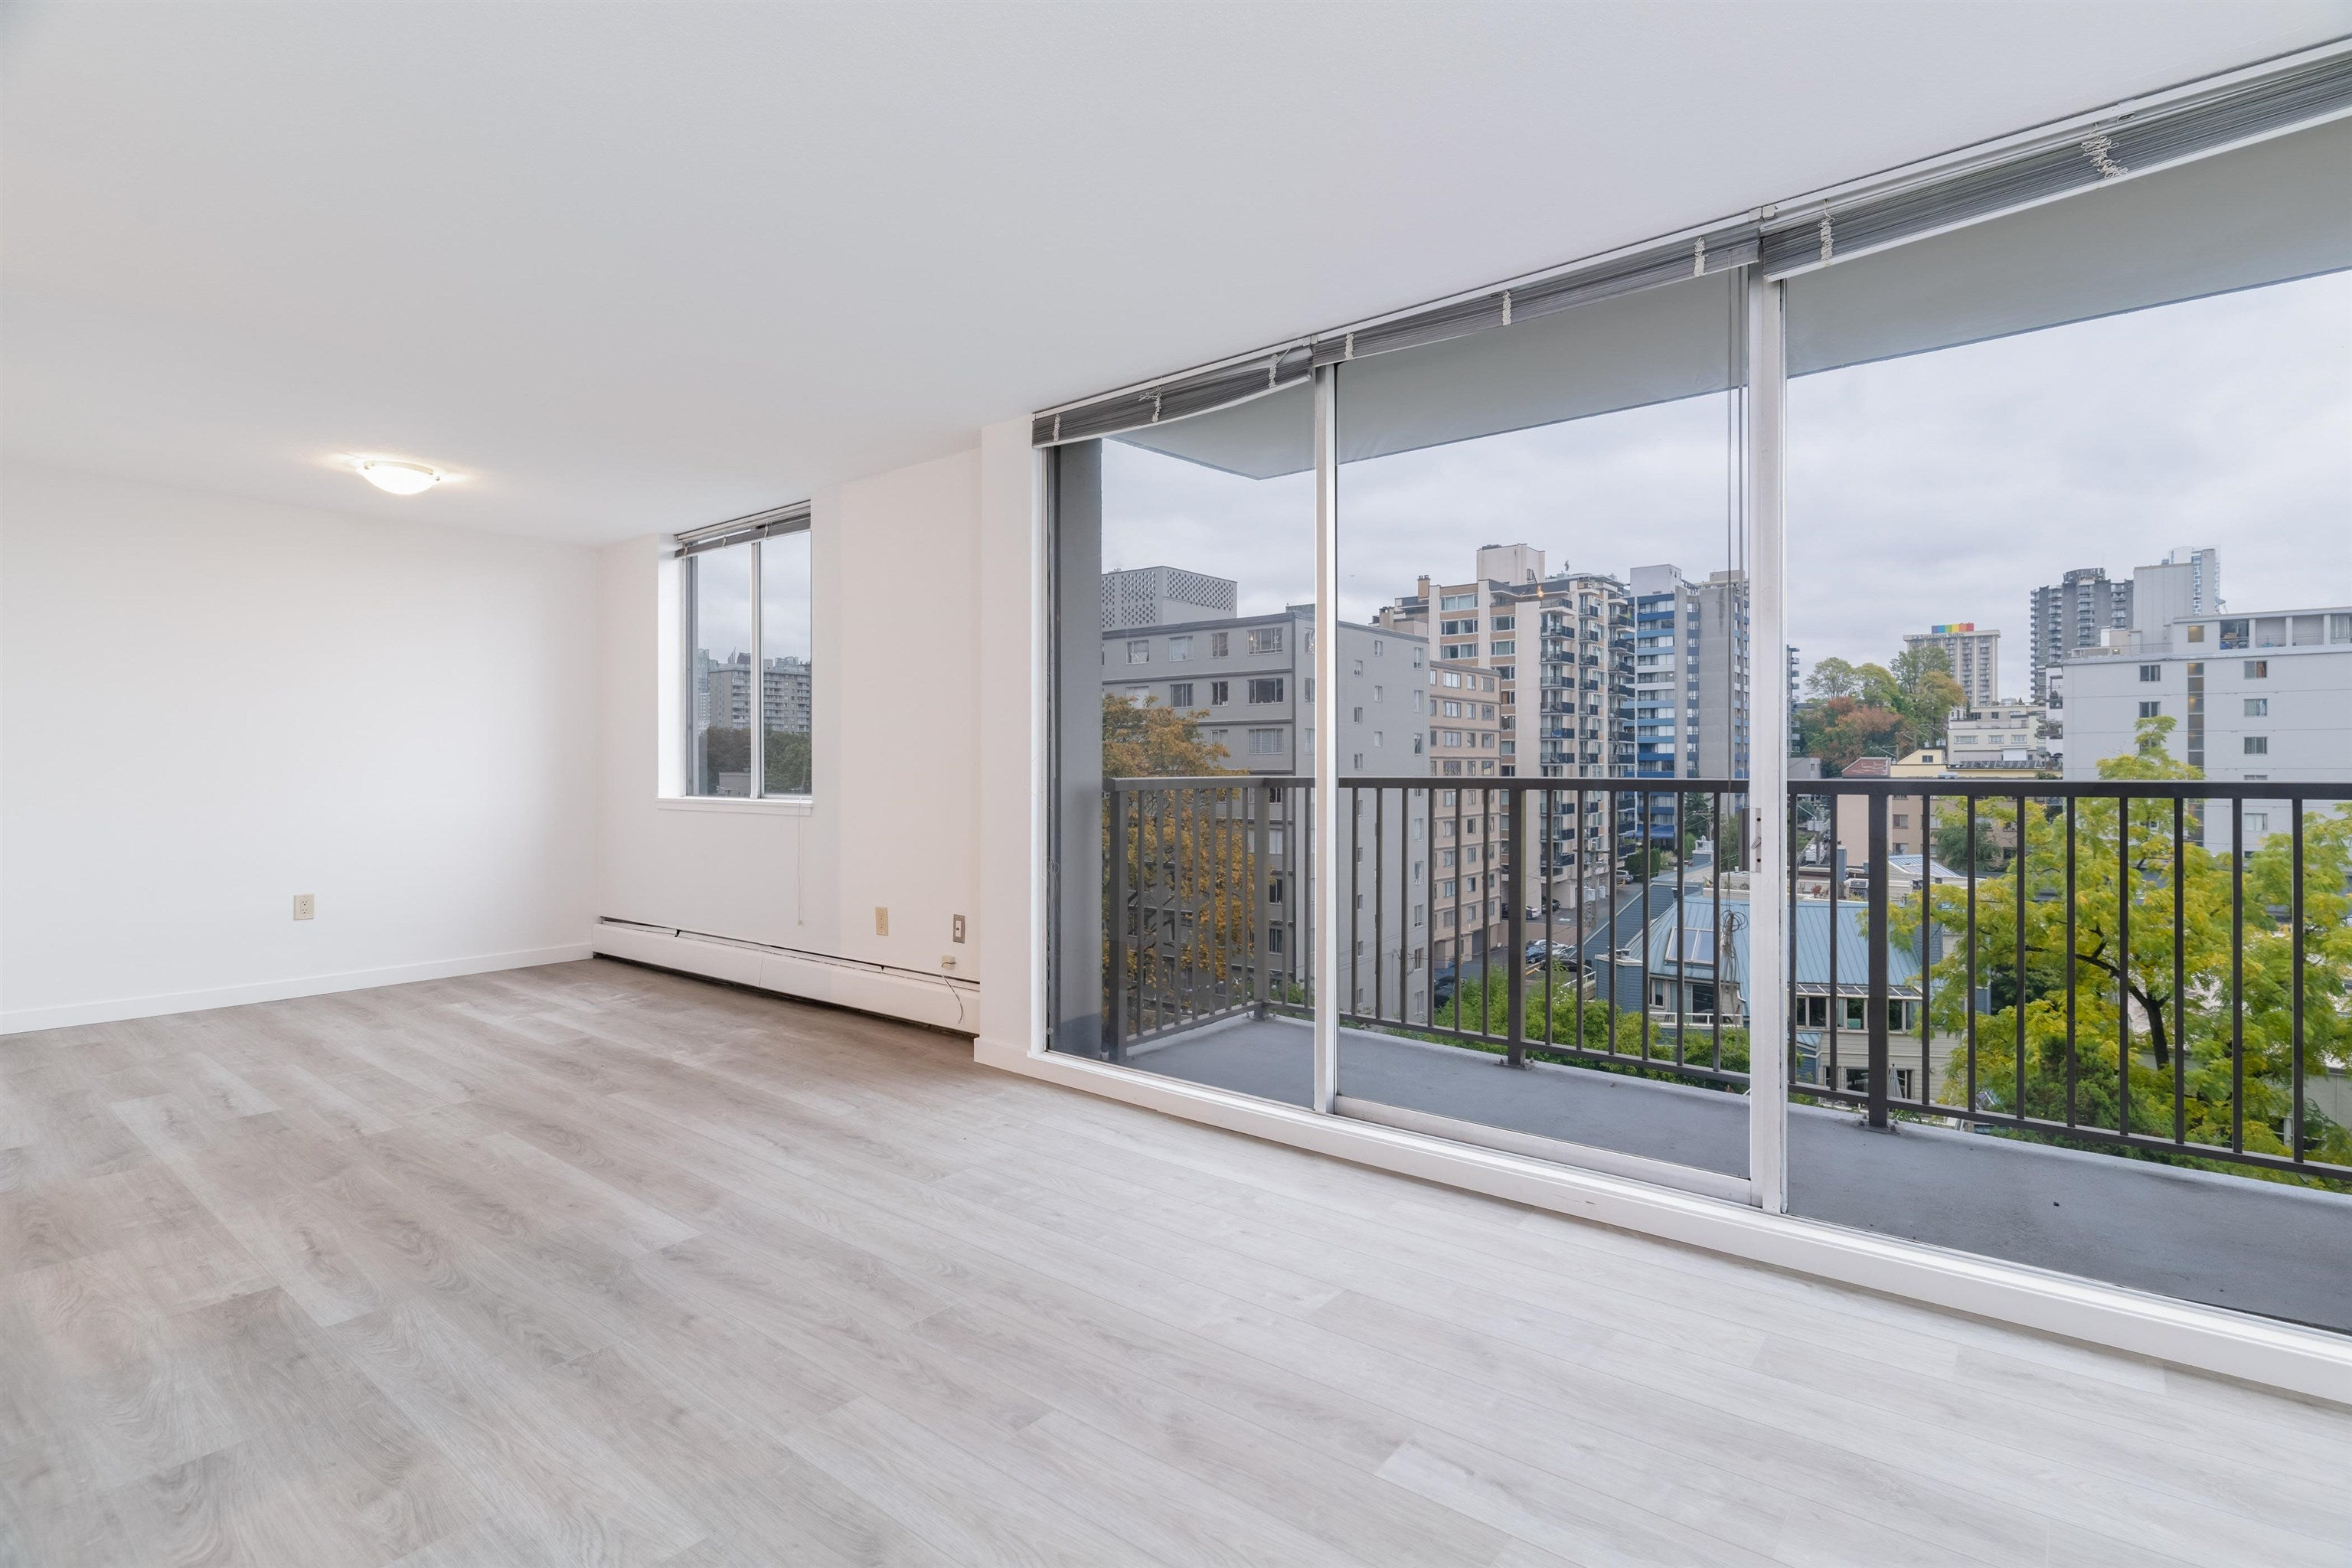 806 1251 CARDERO STREET - West End VW Apartment/Condo for sale, 1 Bedroom (R2625738) - #2